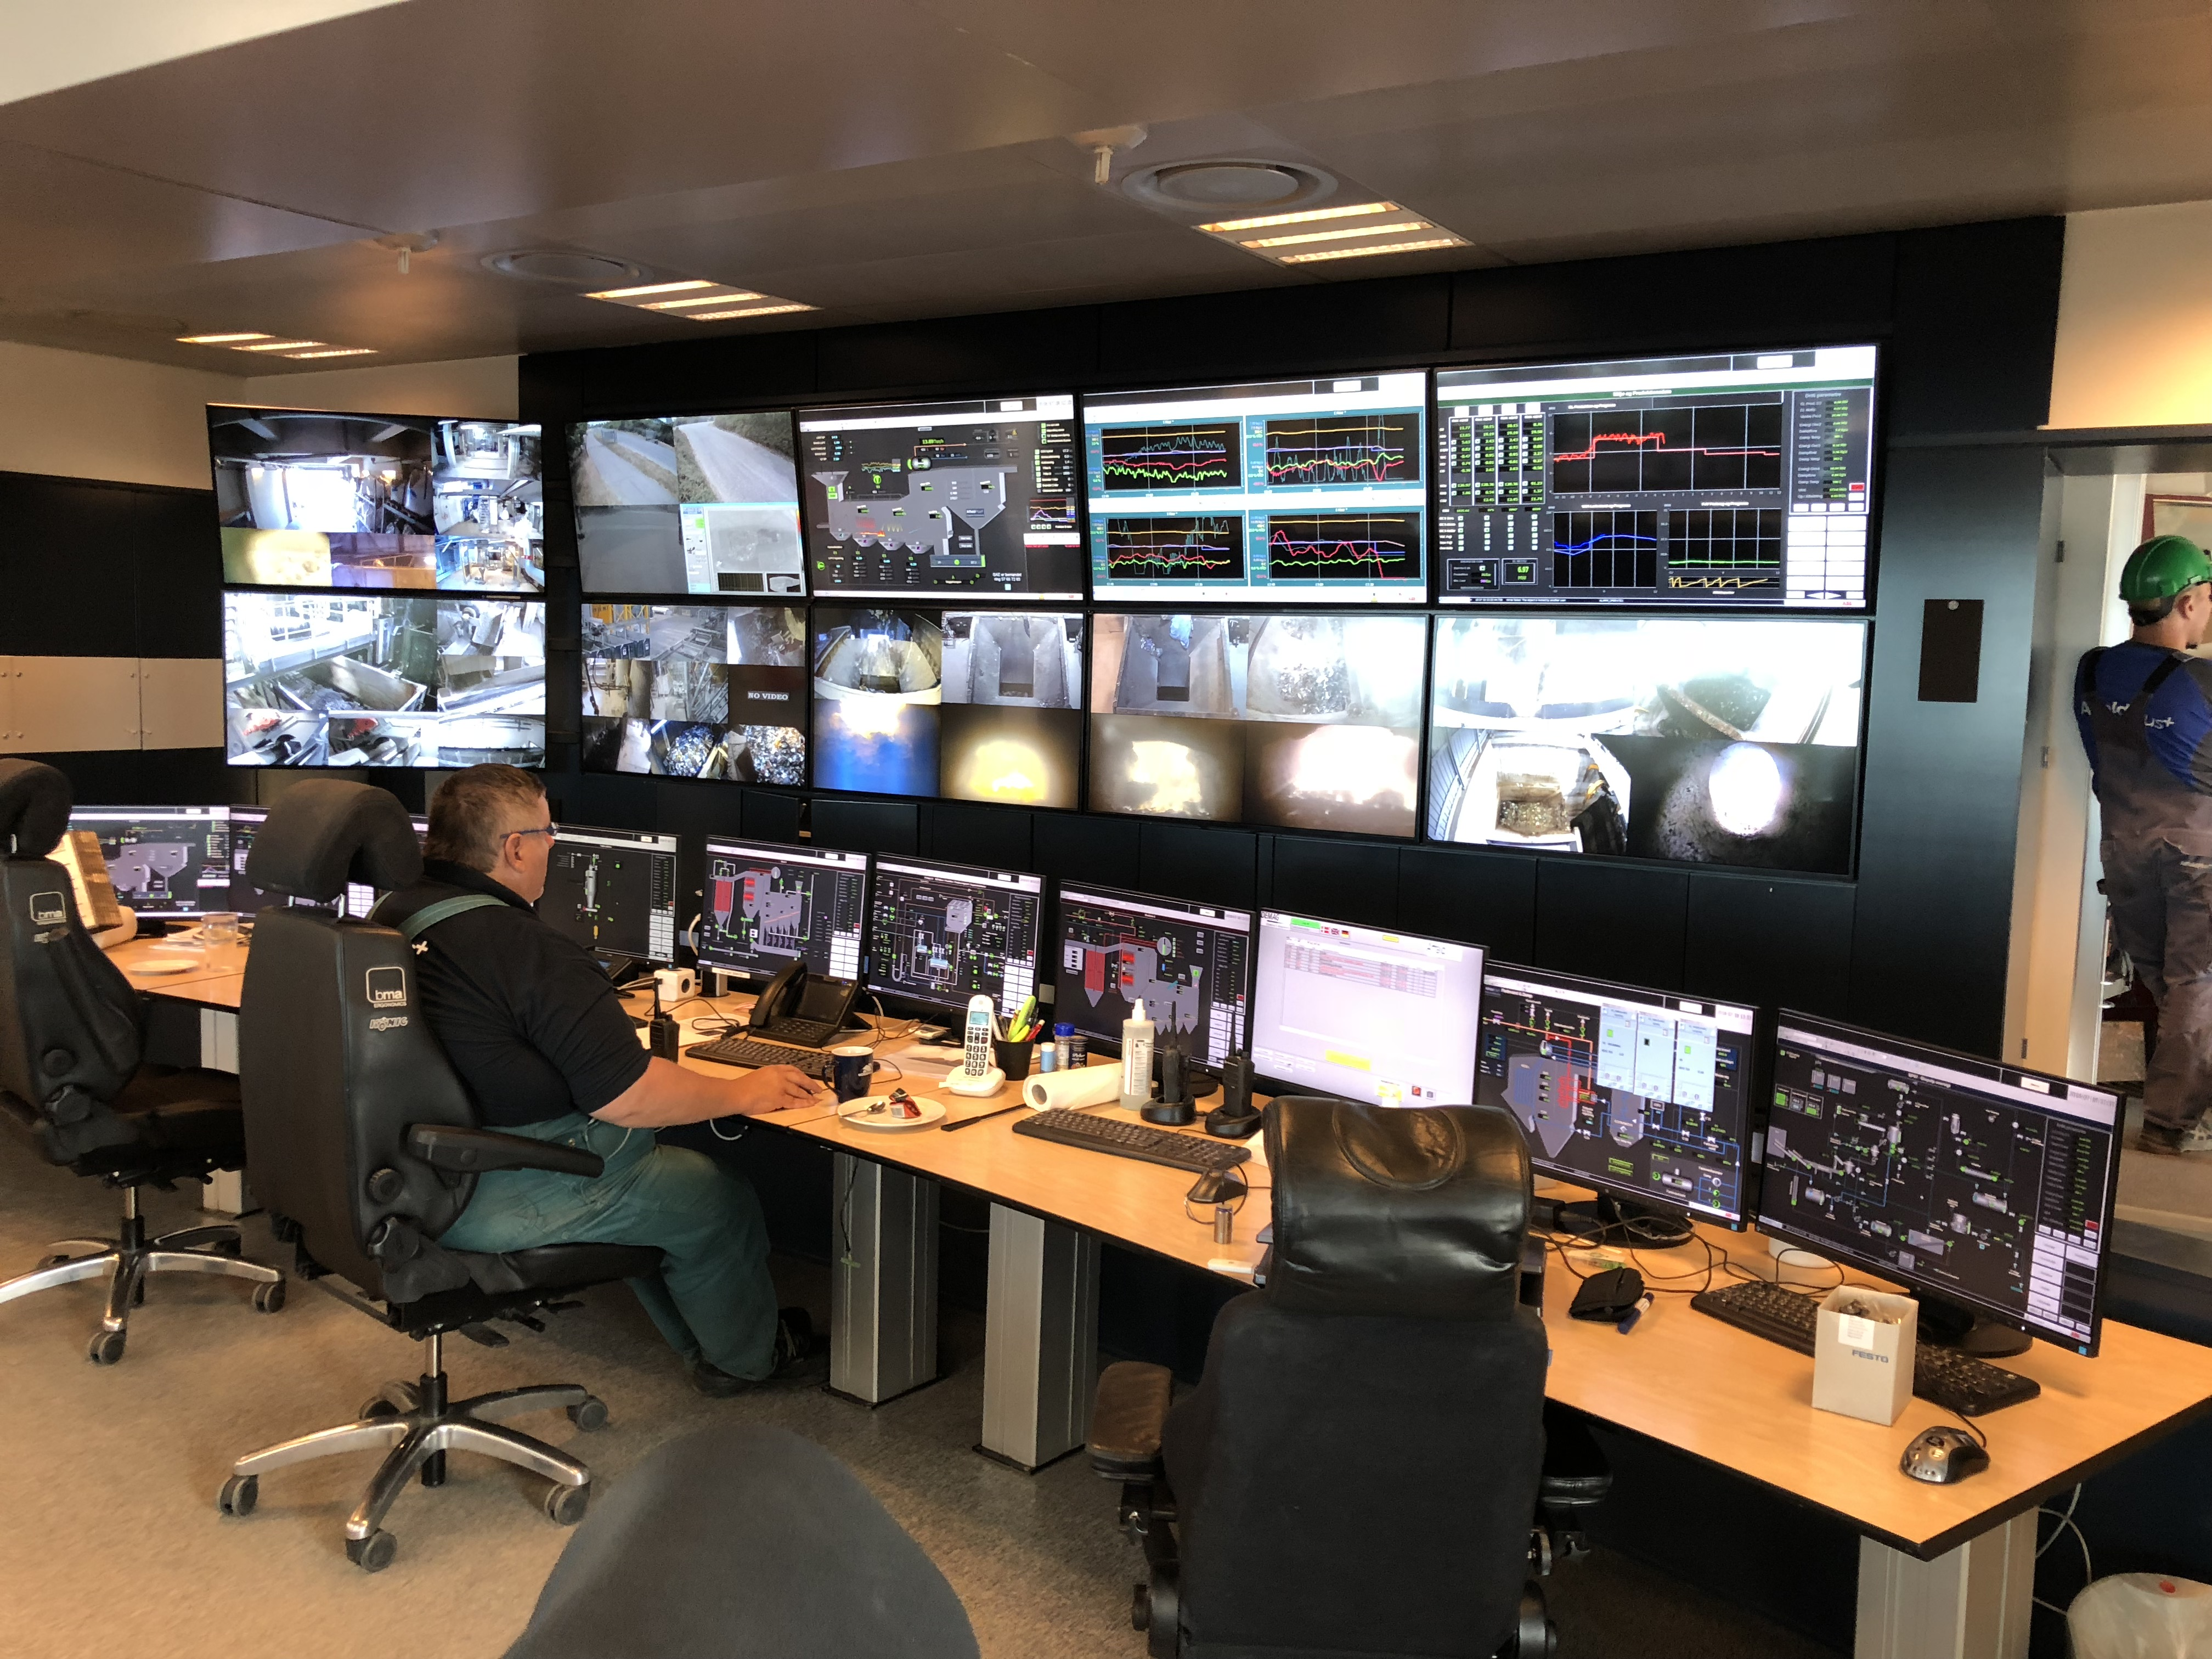 Monitoring room with screens